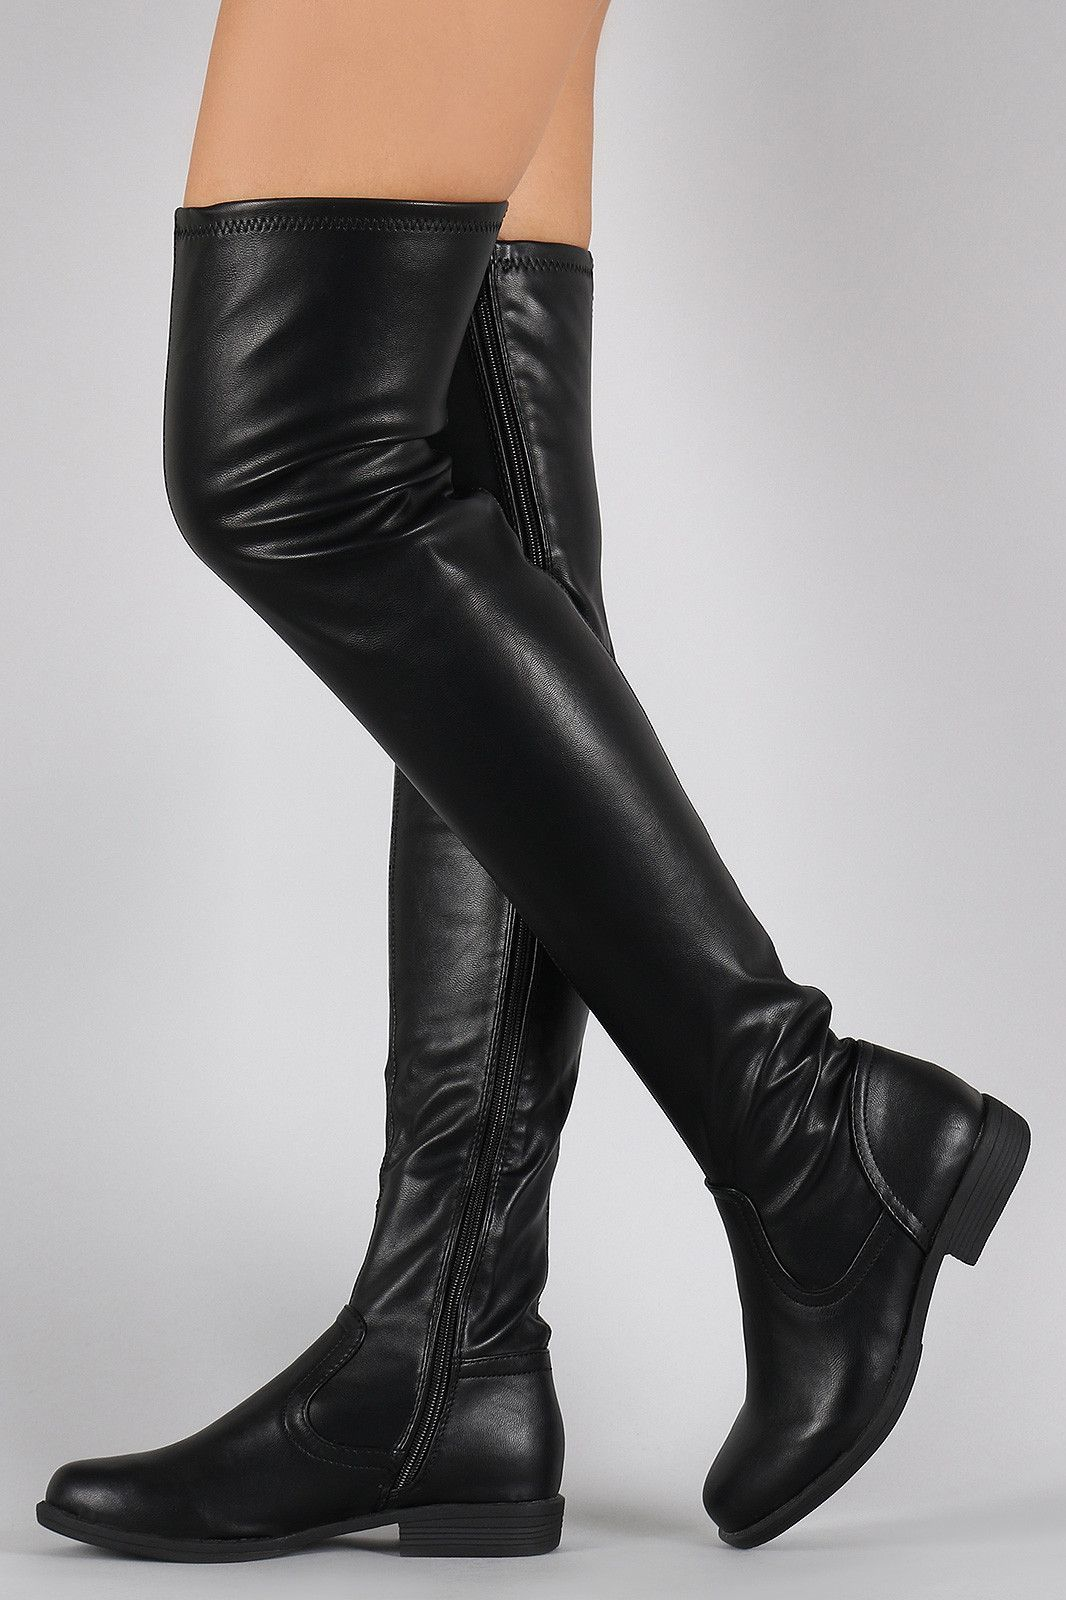 9cab8fab972 Bamboo Vegan Leather Flat Thigh High Boots